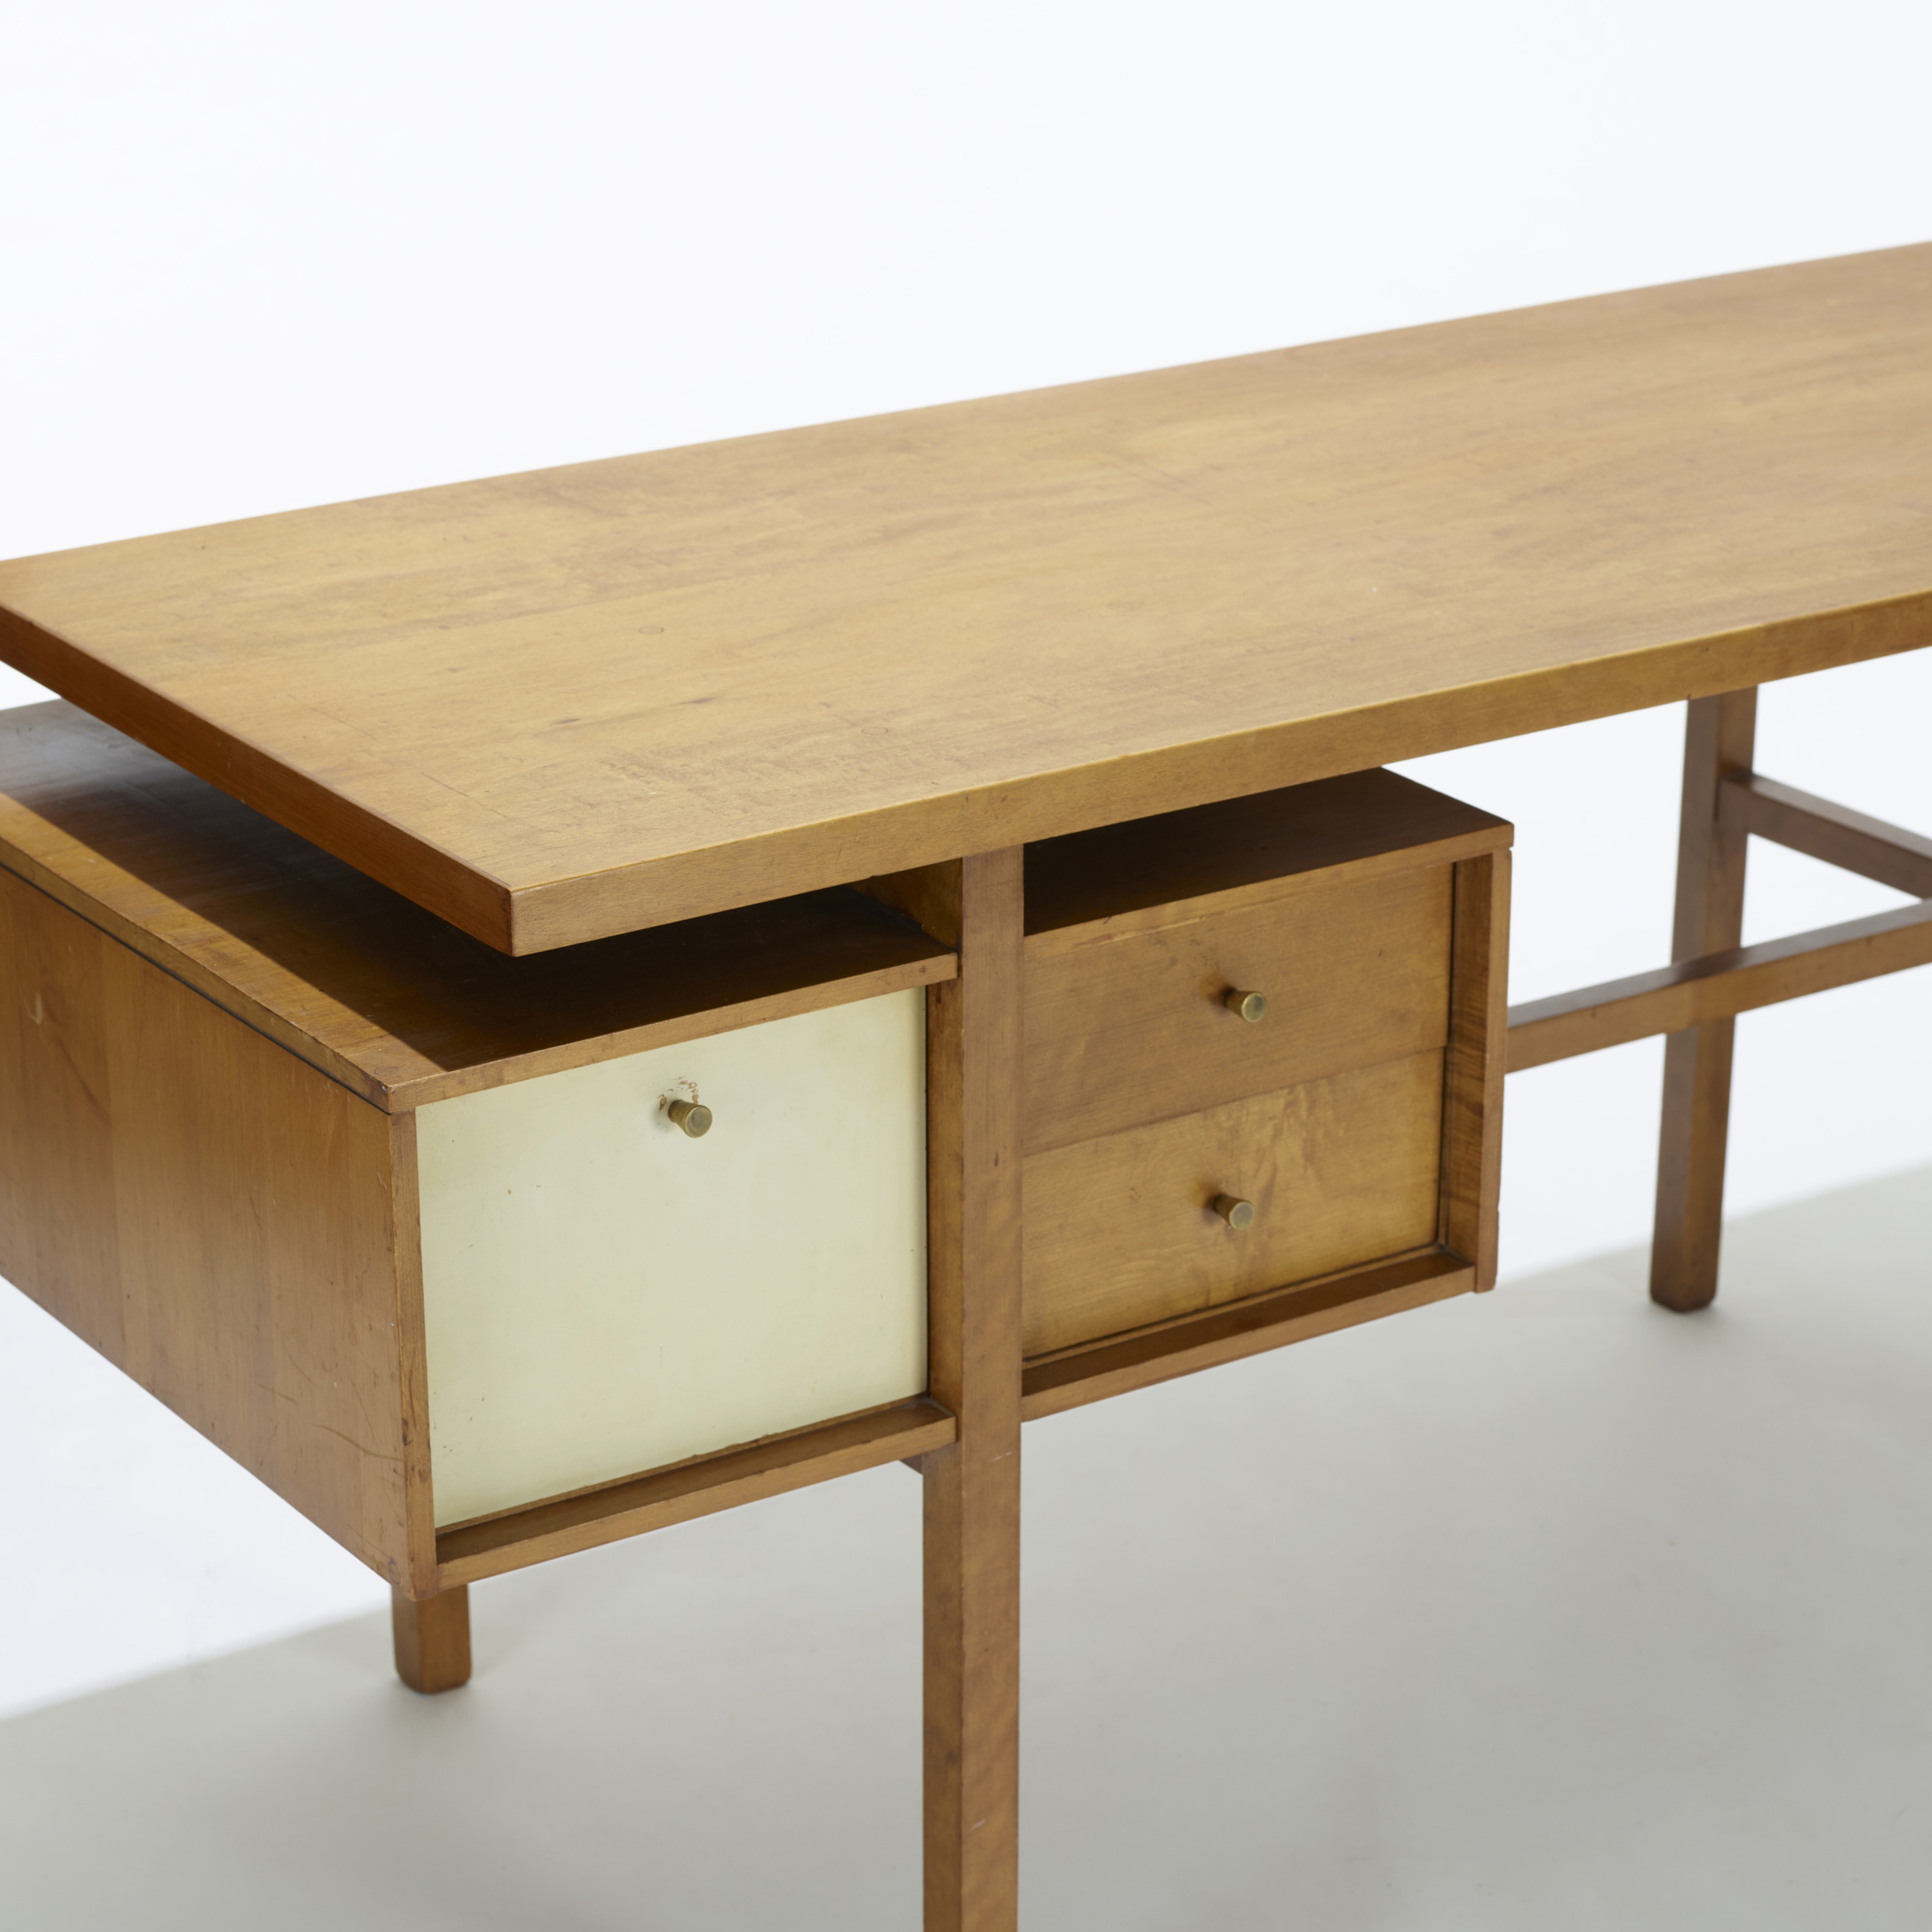 228: Milo Baughman / desk (3 of 3)